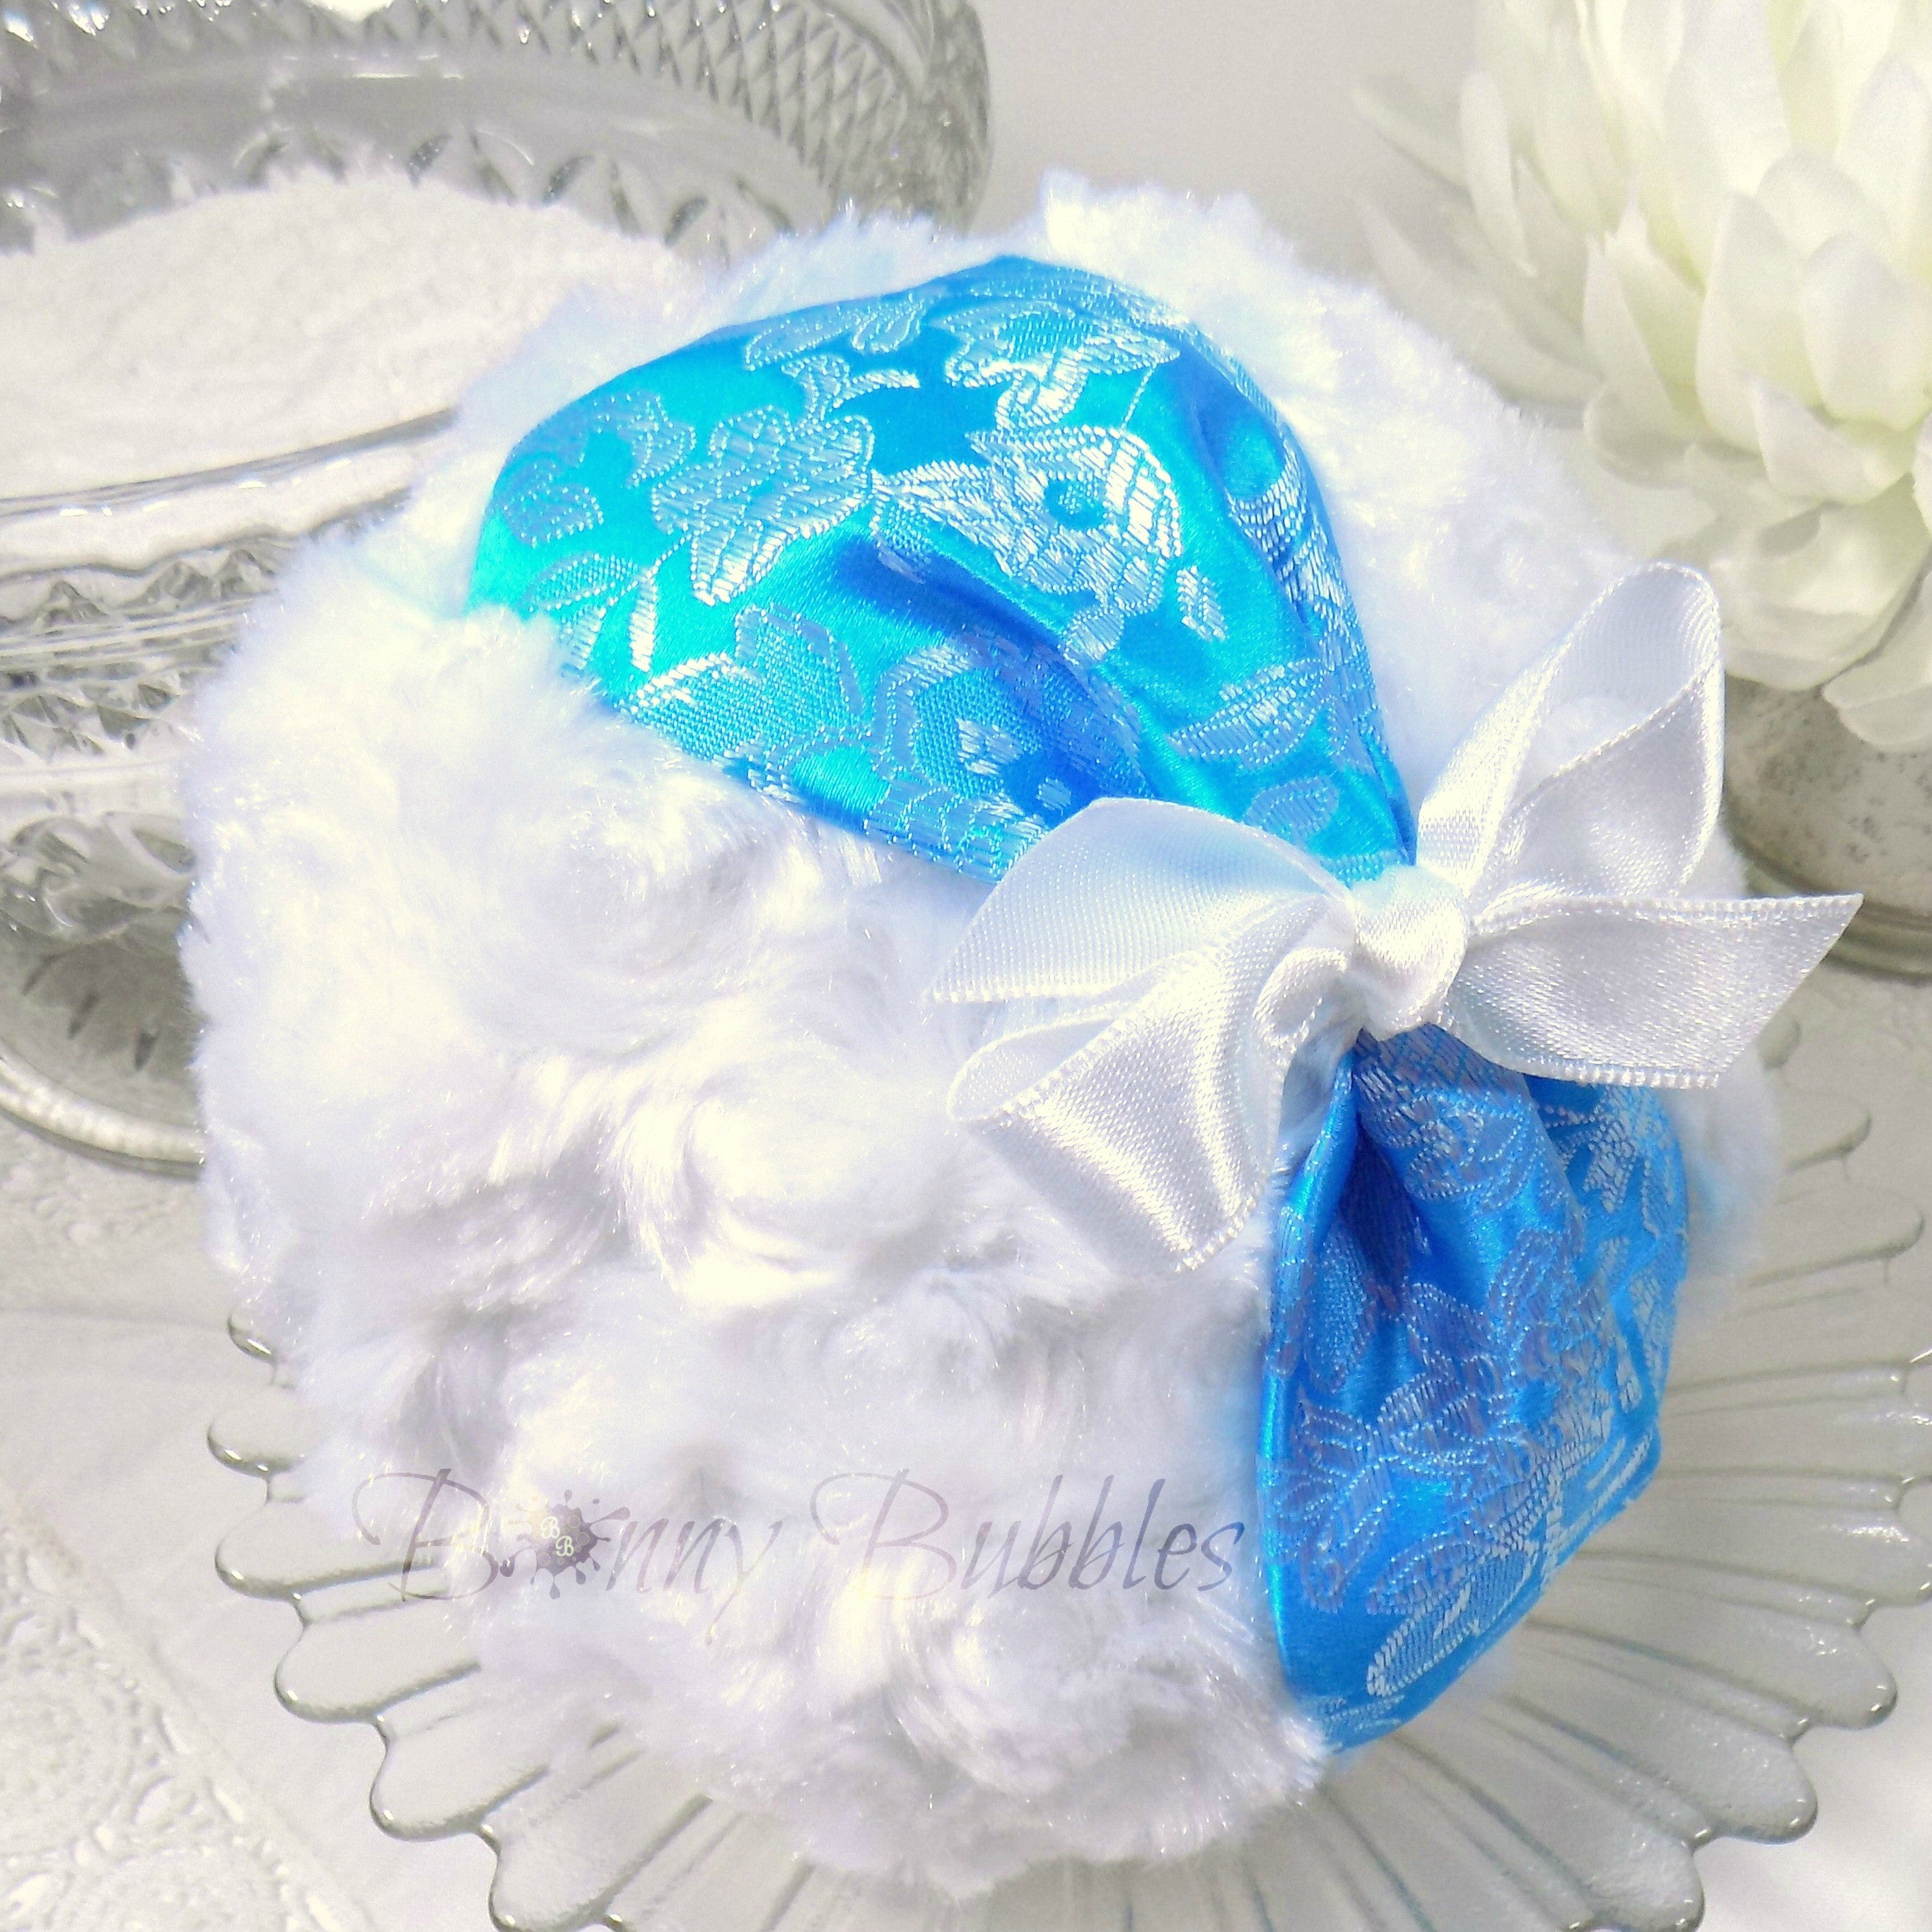 aqua and white brocade powder puff